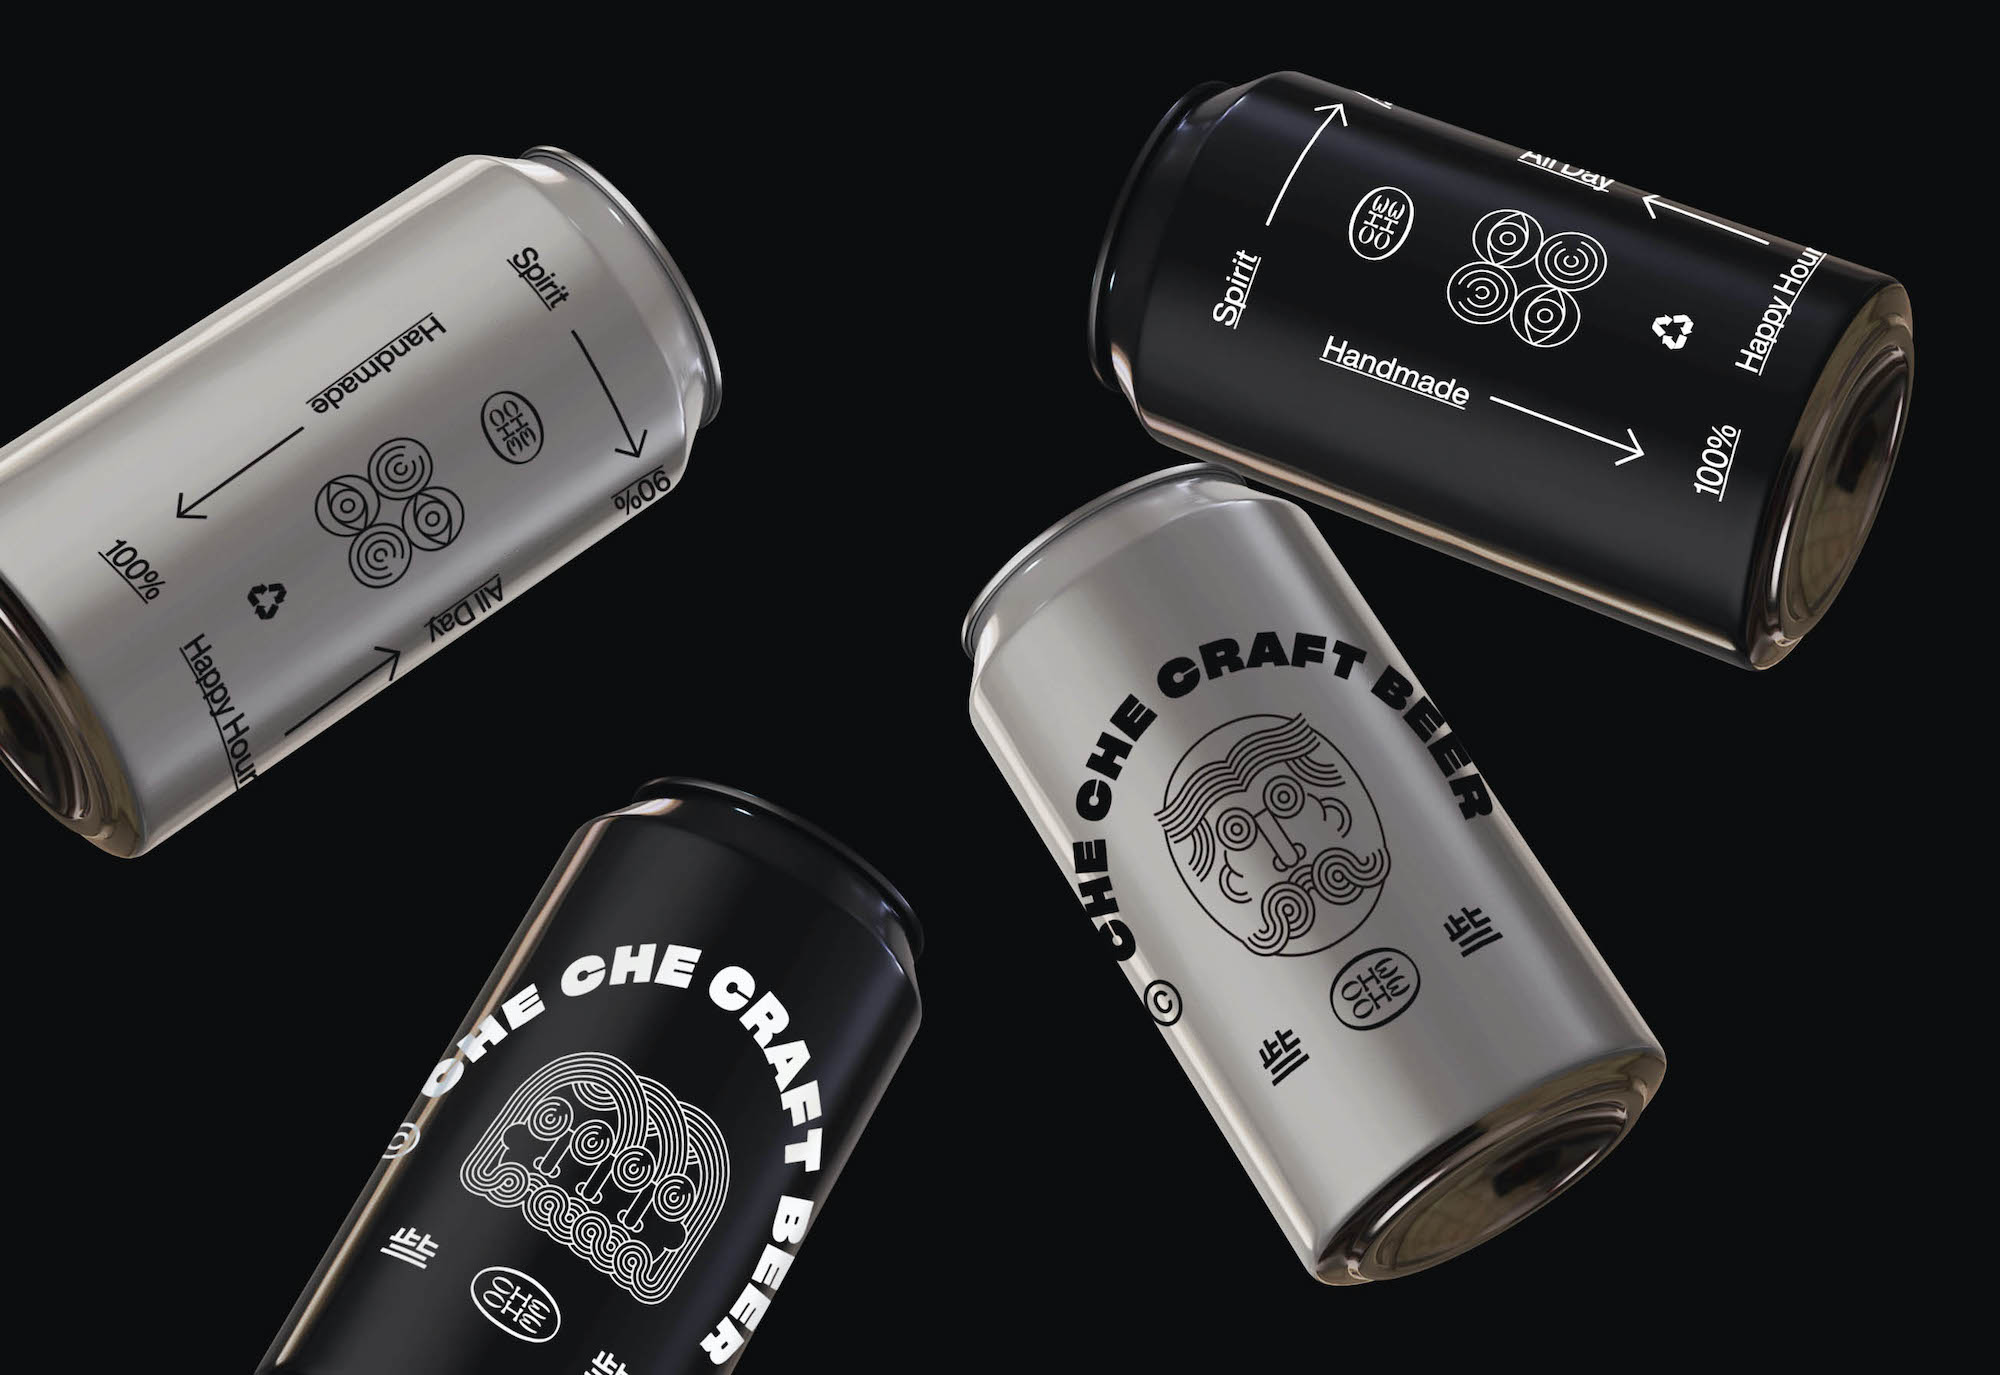 Untitled Macao's collaboration with 'Che Che' on recyclable can designs